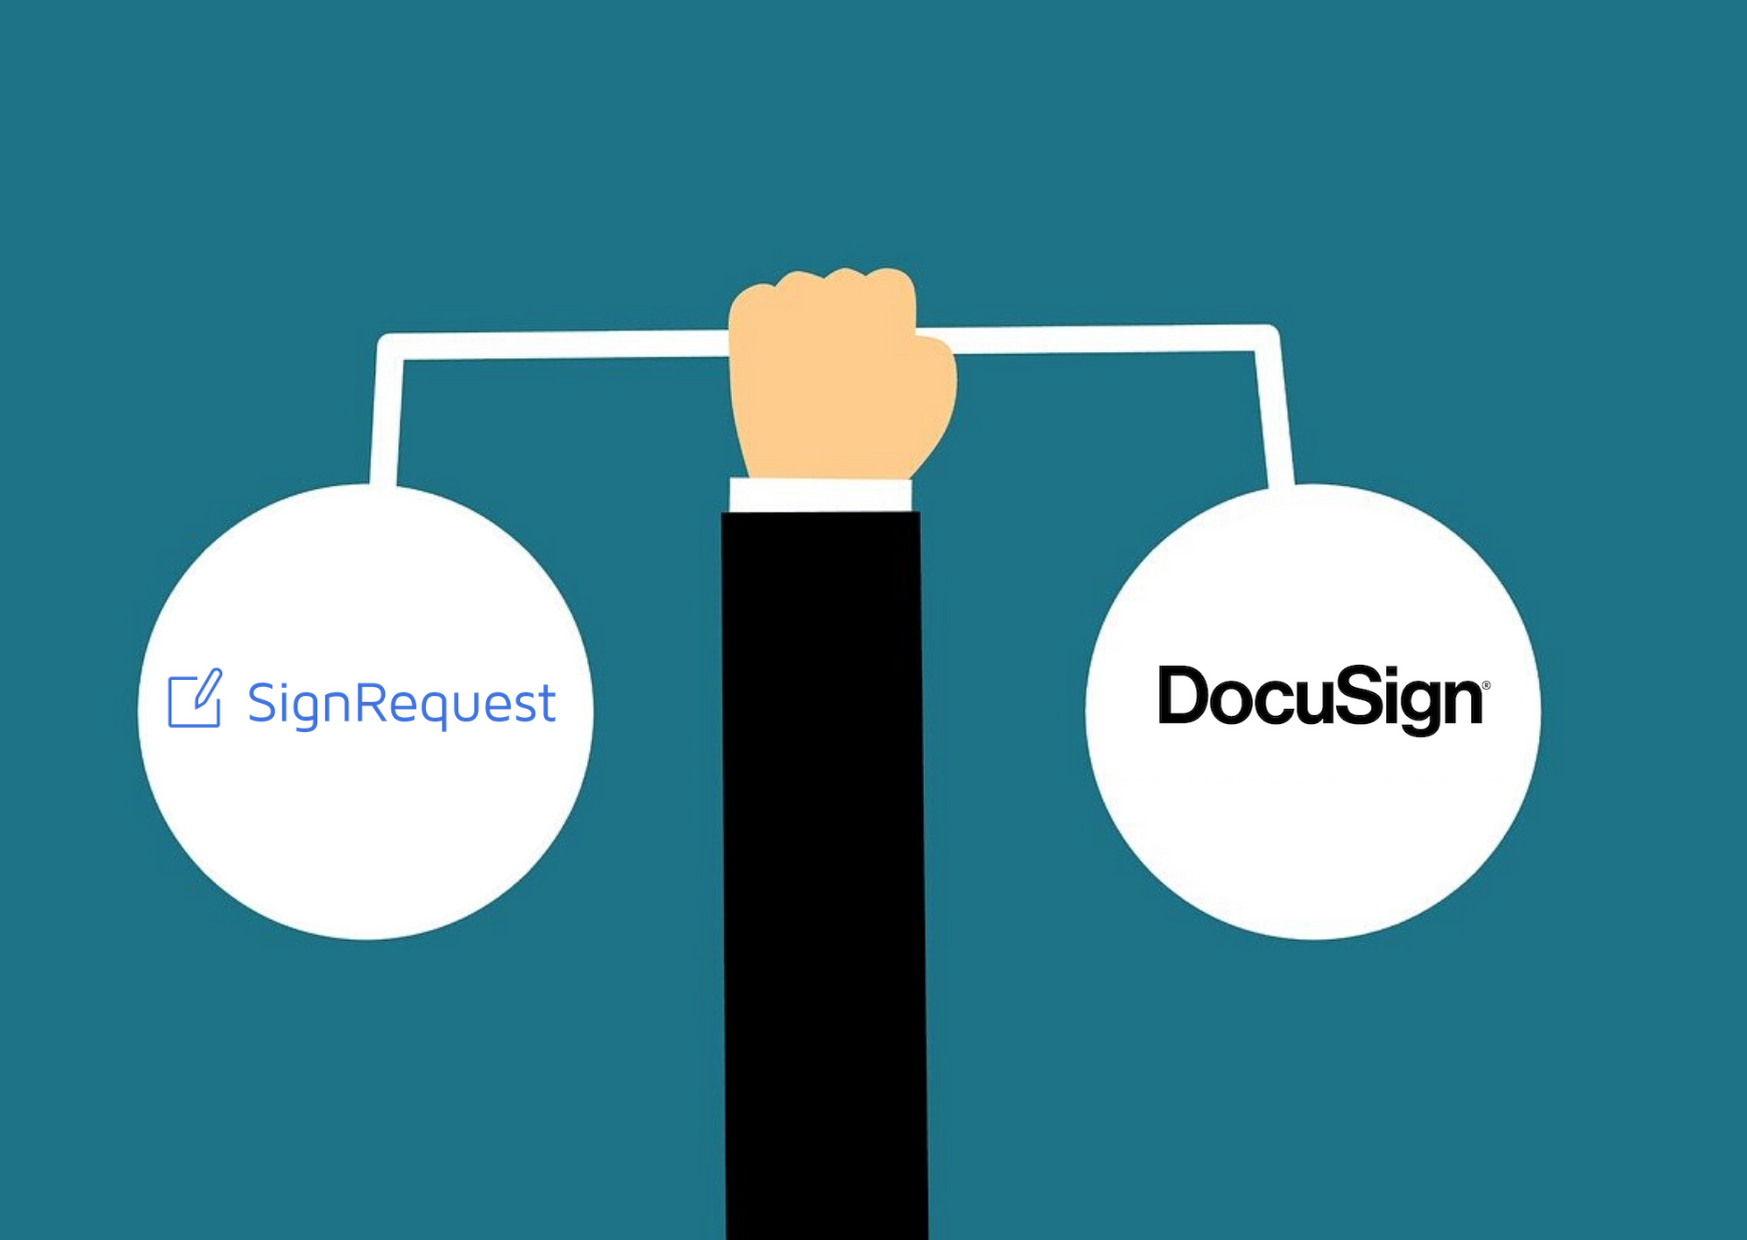 SignRequest versus Docusign | Price and Product Comparison